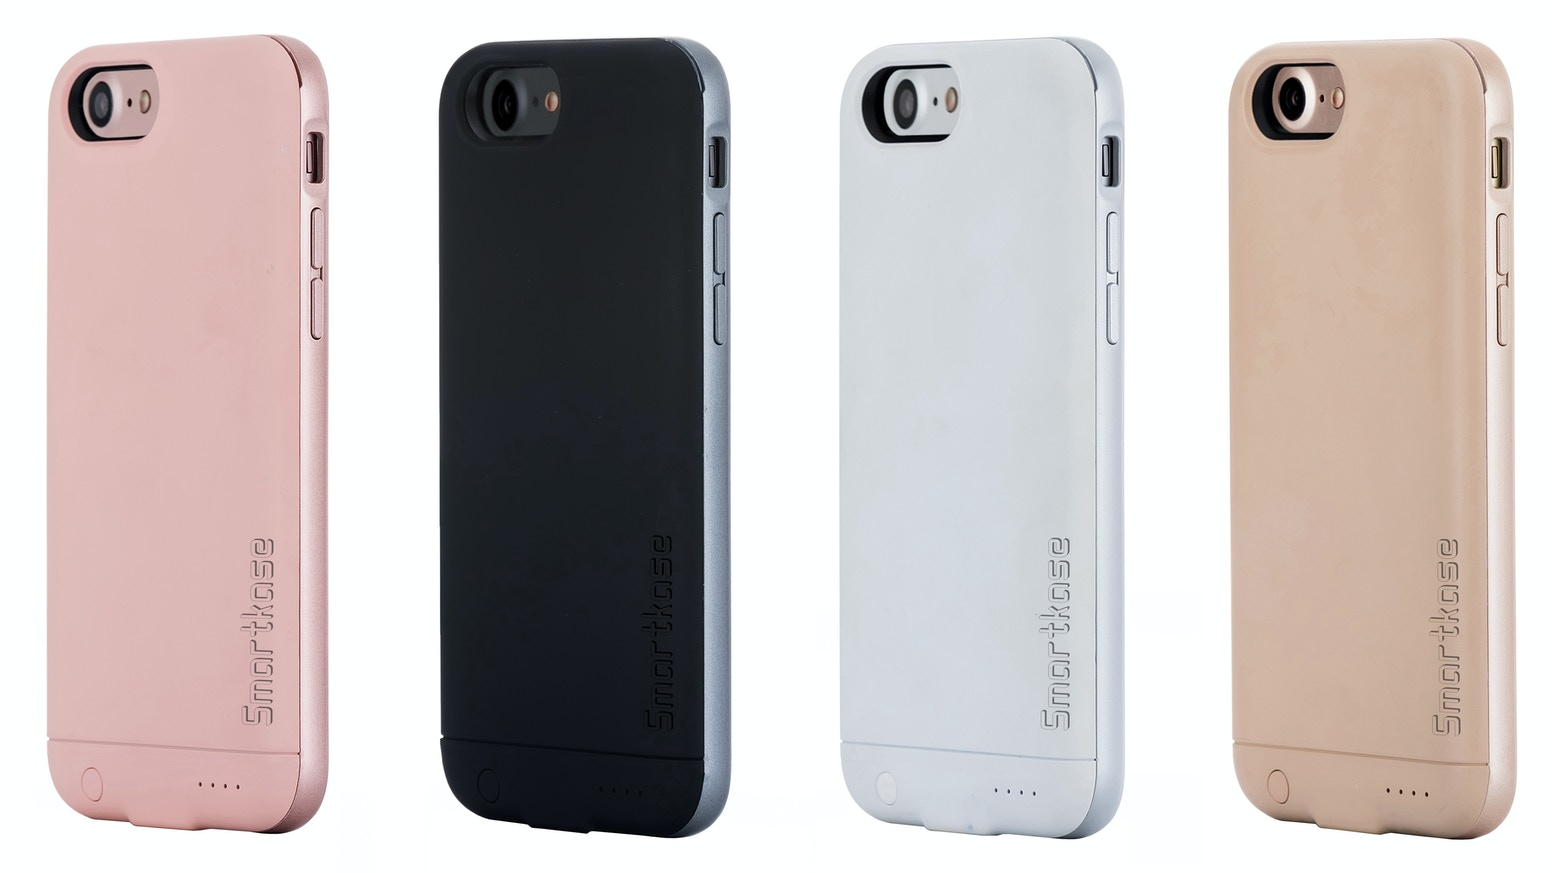 new concept 1e90a f9daa Smartkase for iPhone 7 - Dual Sim +Memory Card +Battery Case by ...